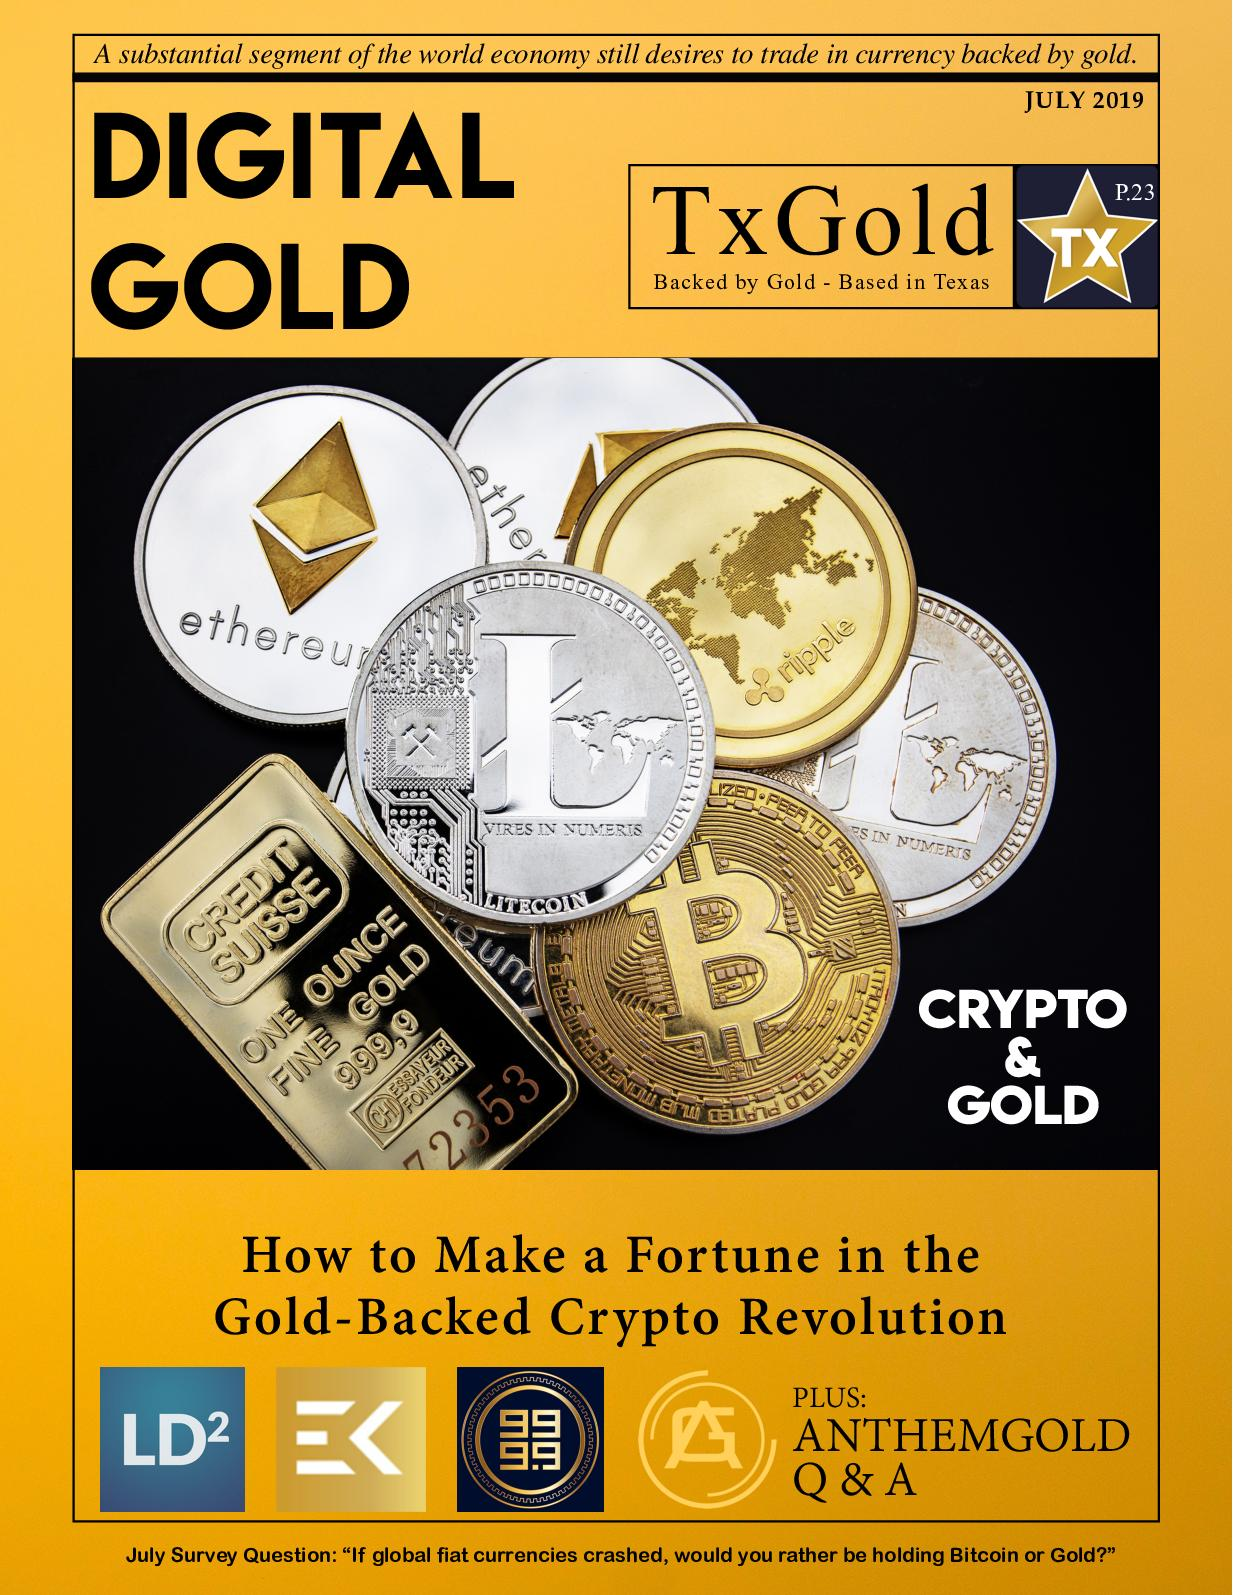 what cryptocurrency is backed by gold